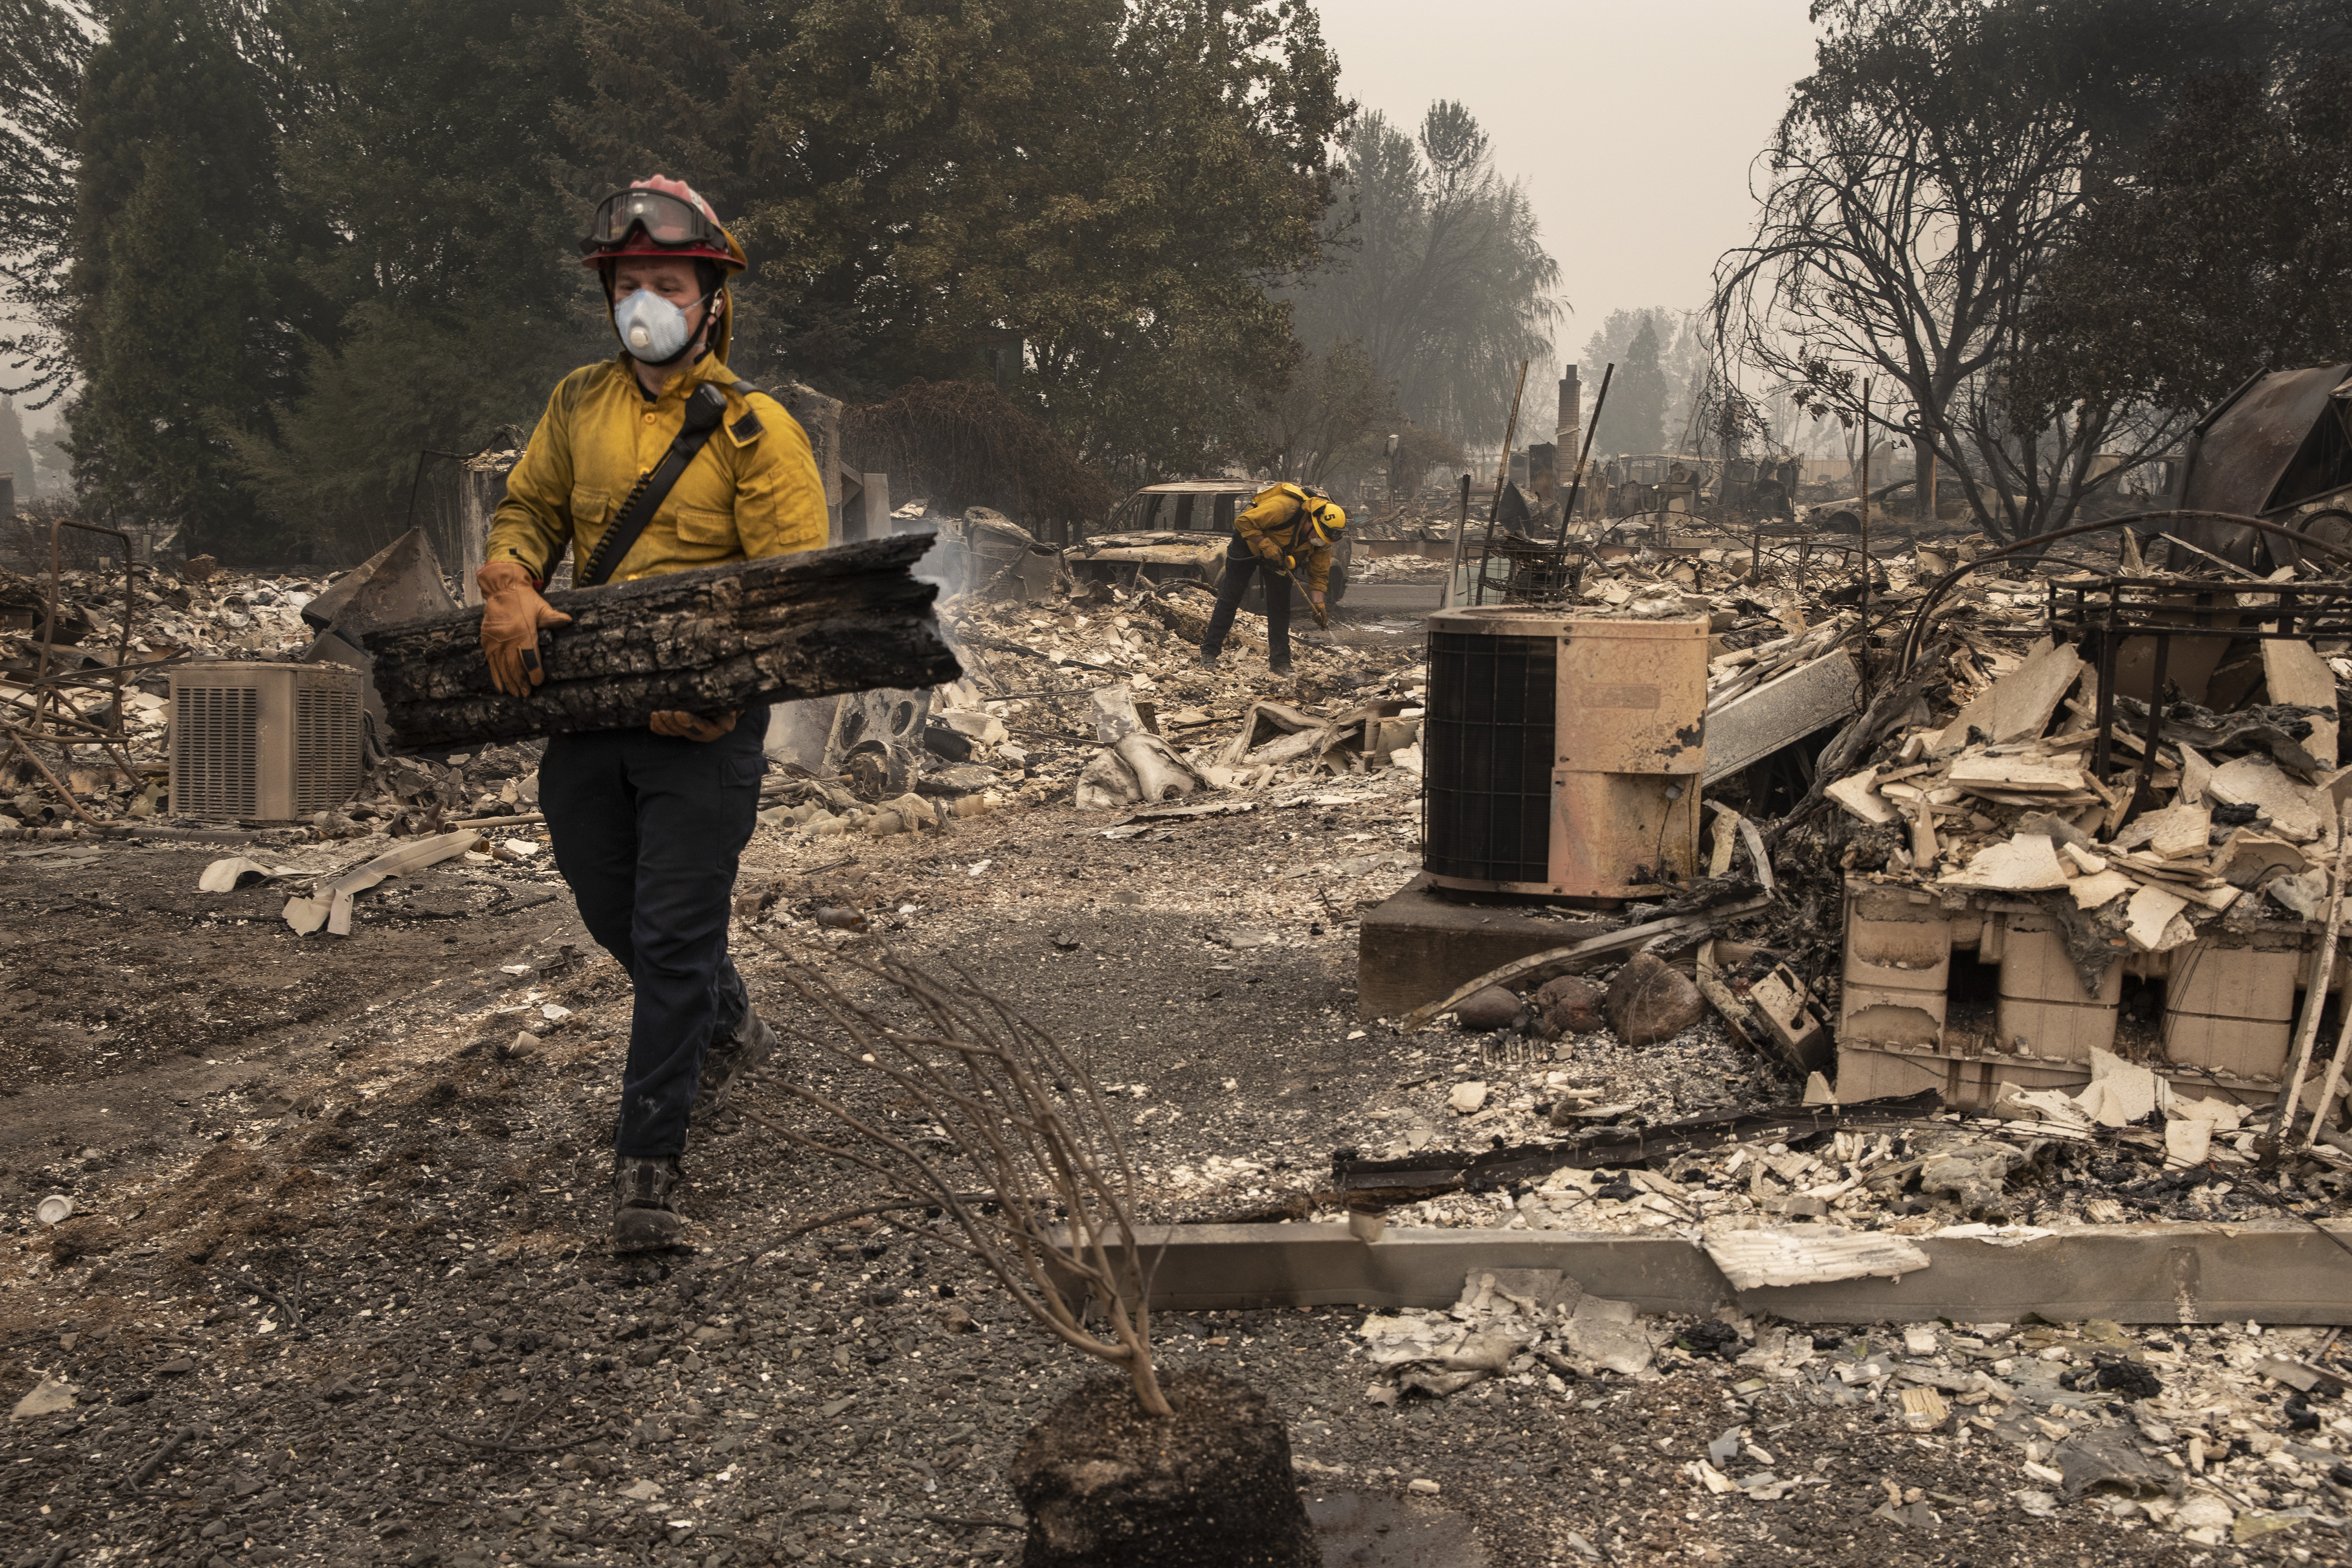 Jackson County District 5 firefighter Captain Aaron Bustard works on a smoldering fire in a burned neighborhood in Talent, Ore., Friday, Sept. 11, 2020, as destructive wildfires devastate the region. (AP Photo/Paula Bronstein)